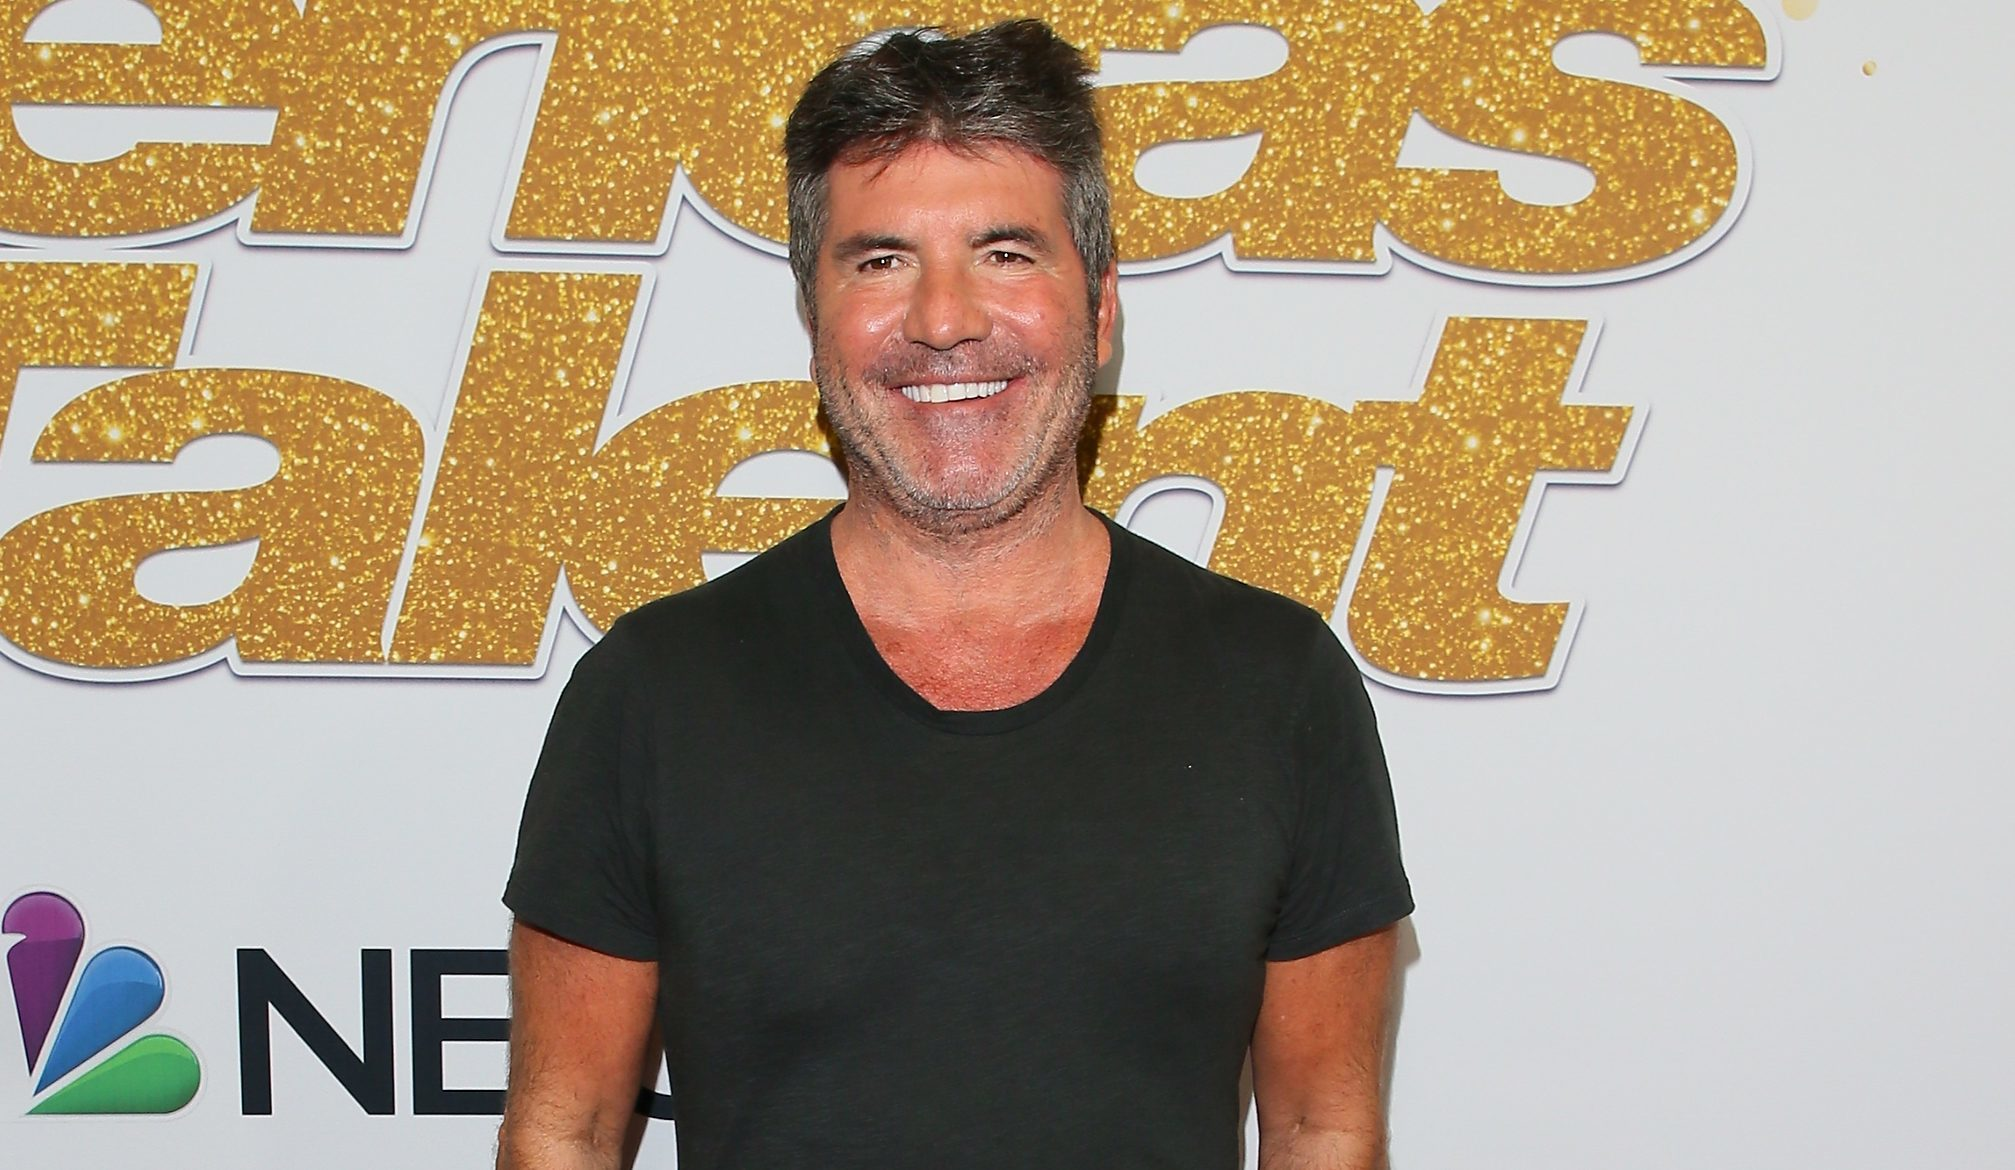 """Simon Cowell attends """"America's Got Talent"""" Season 13 Live Show Red Carpet in Los Angeles, California. (JB Lacroix/GettyImages)"""